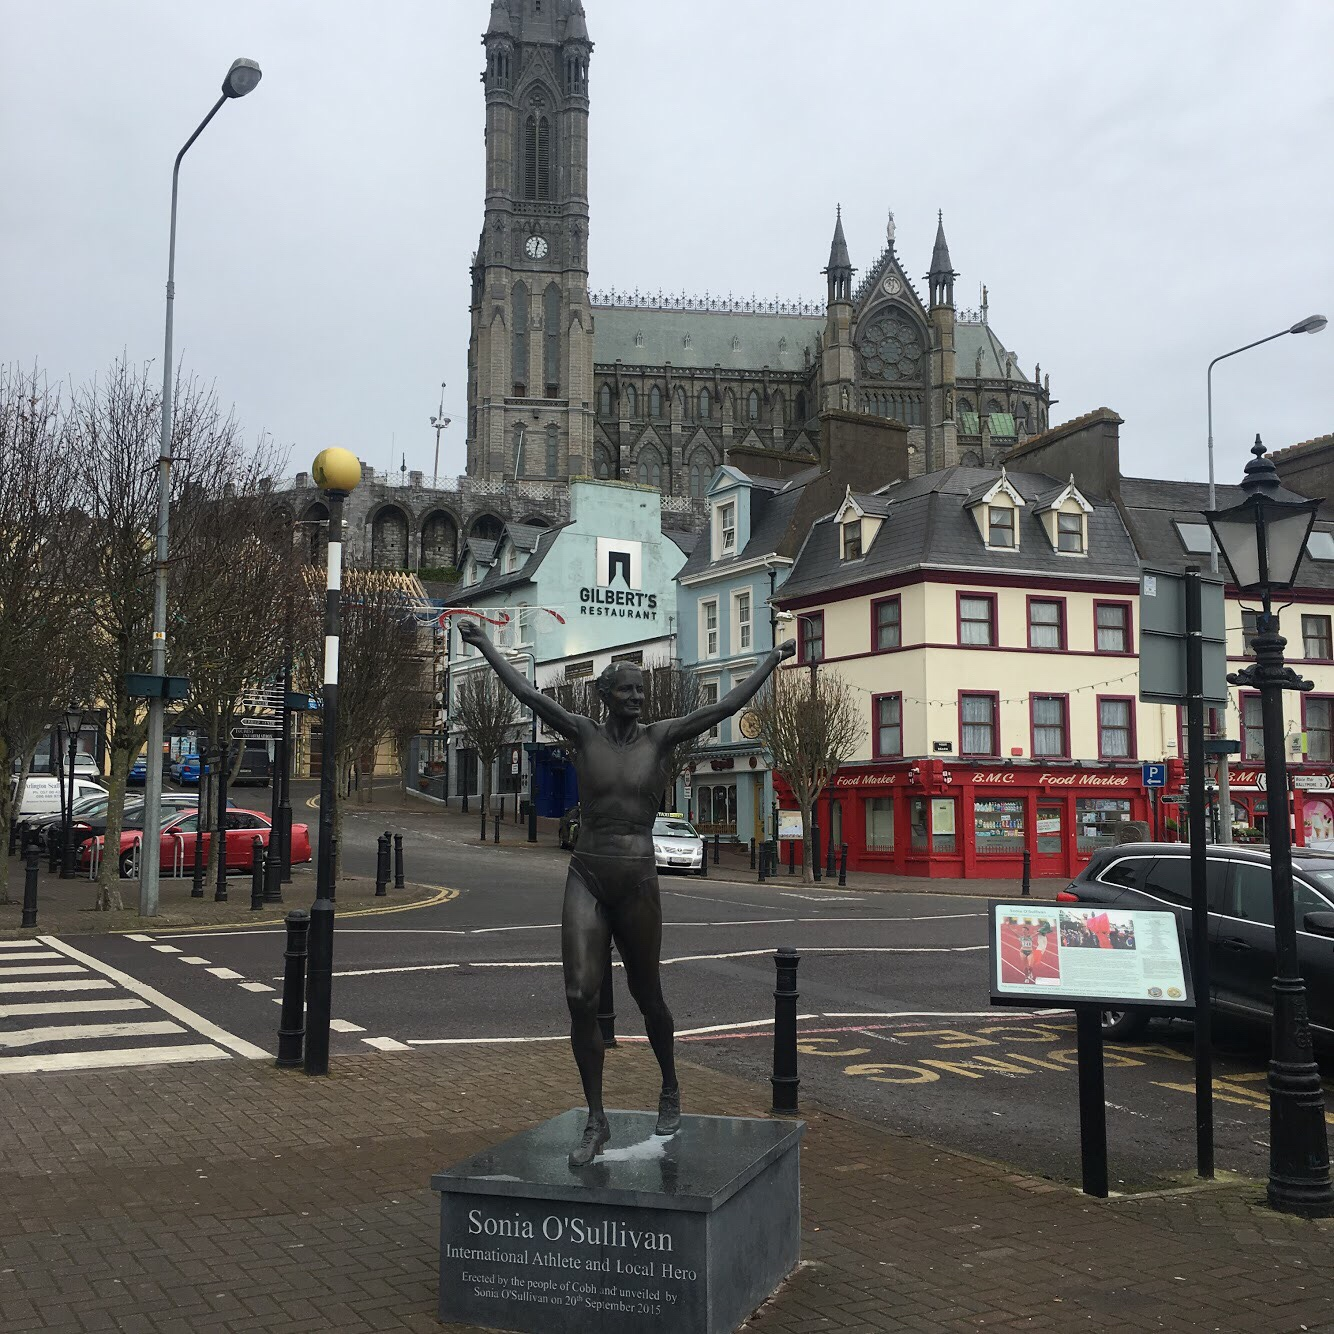 Singles groups in Cobh - Meetup